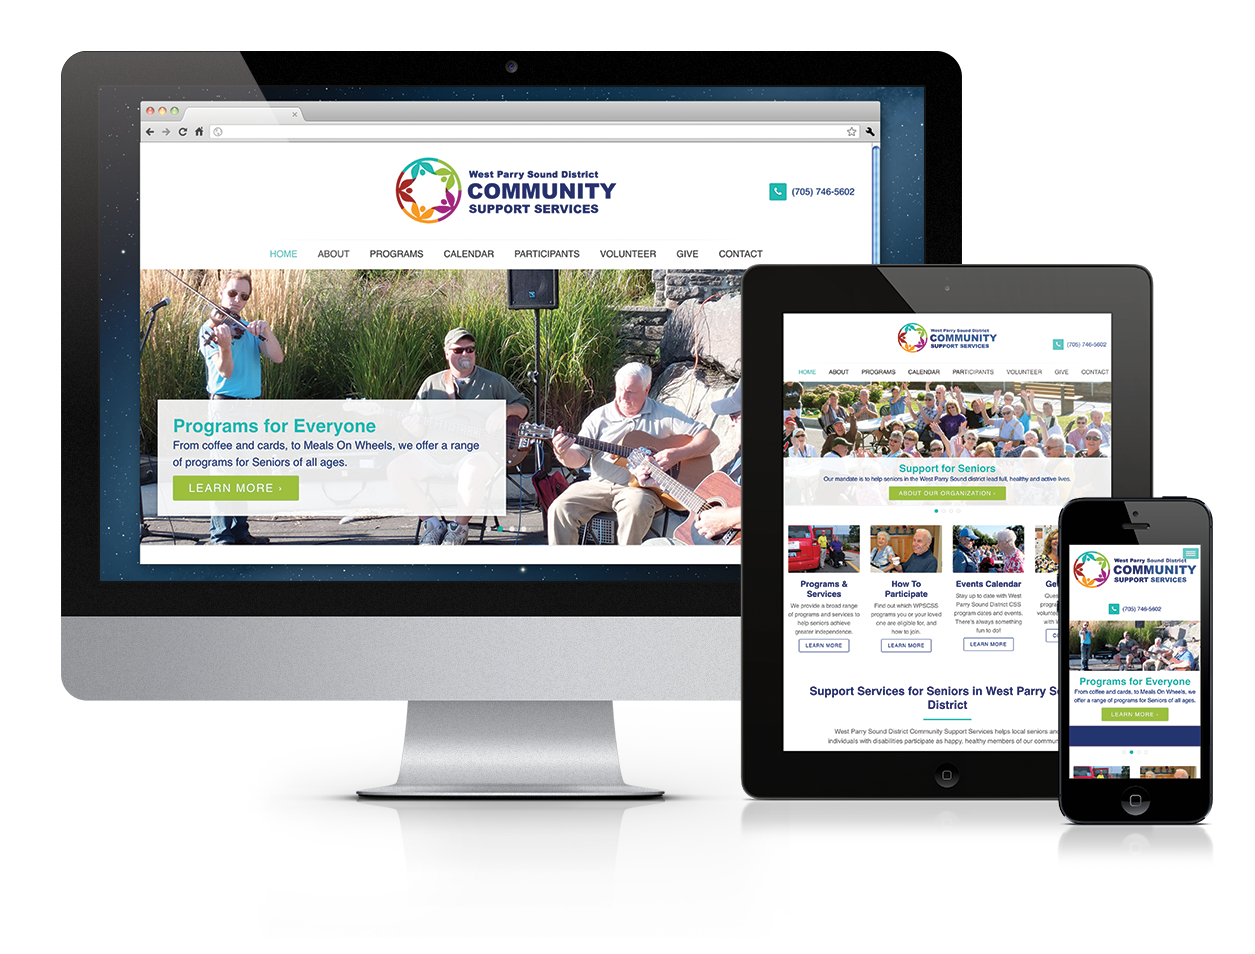 West Parry Sound District Community Support Services Website Design